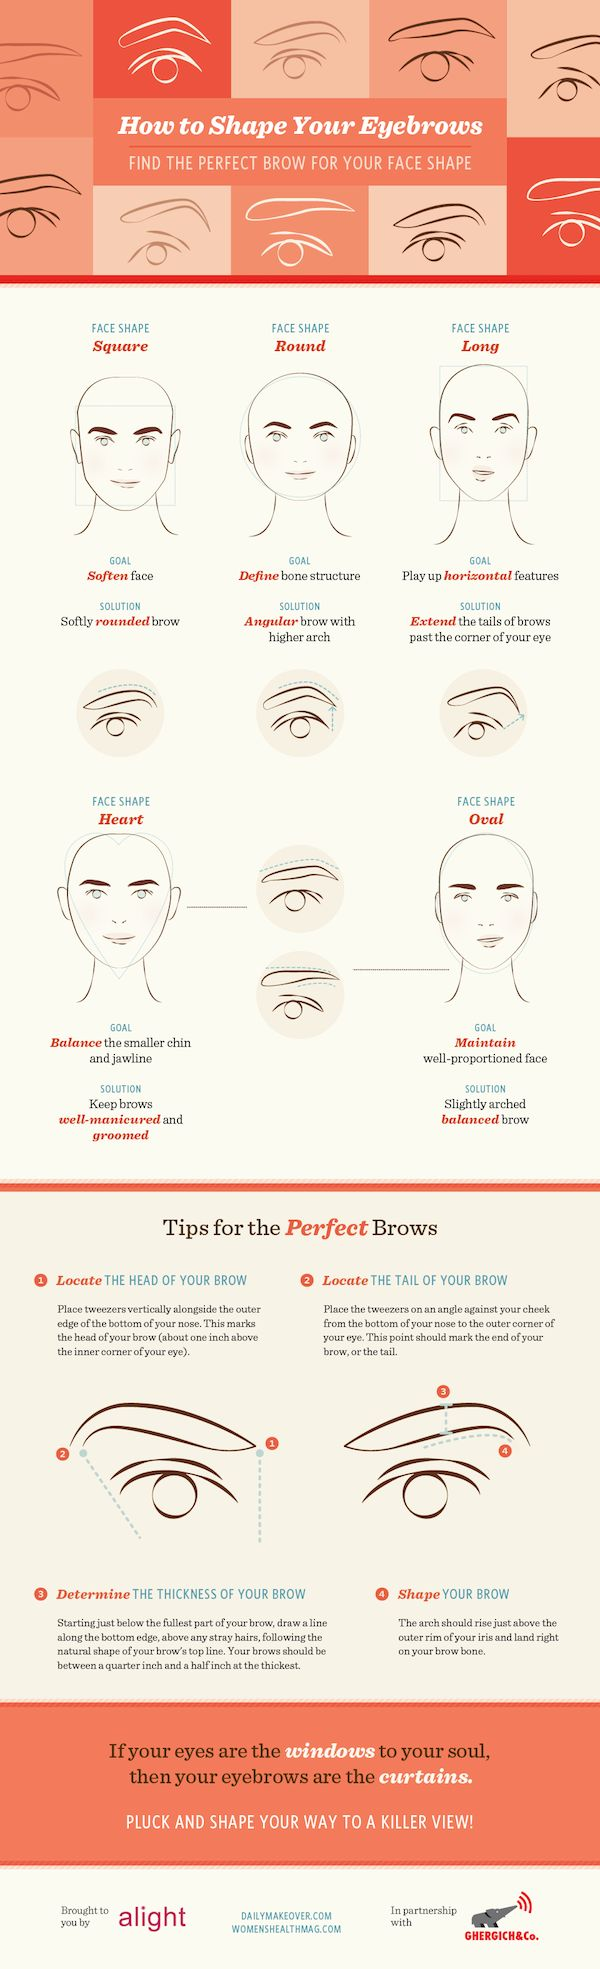 Oh the lovely things: How to Shape your Eyebrows